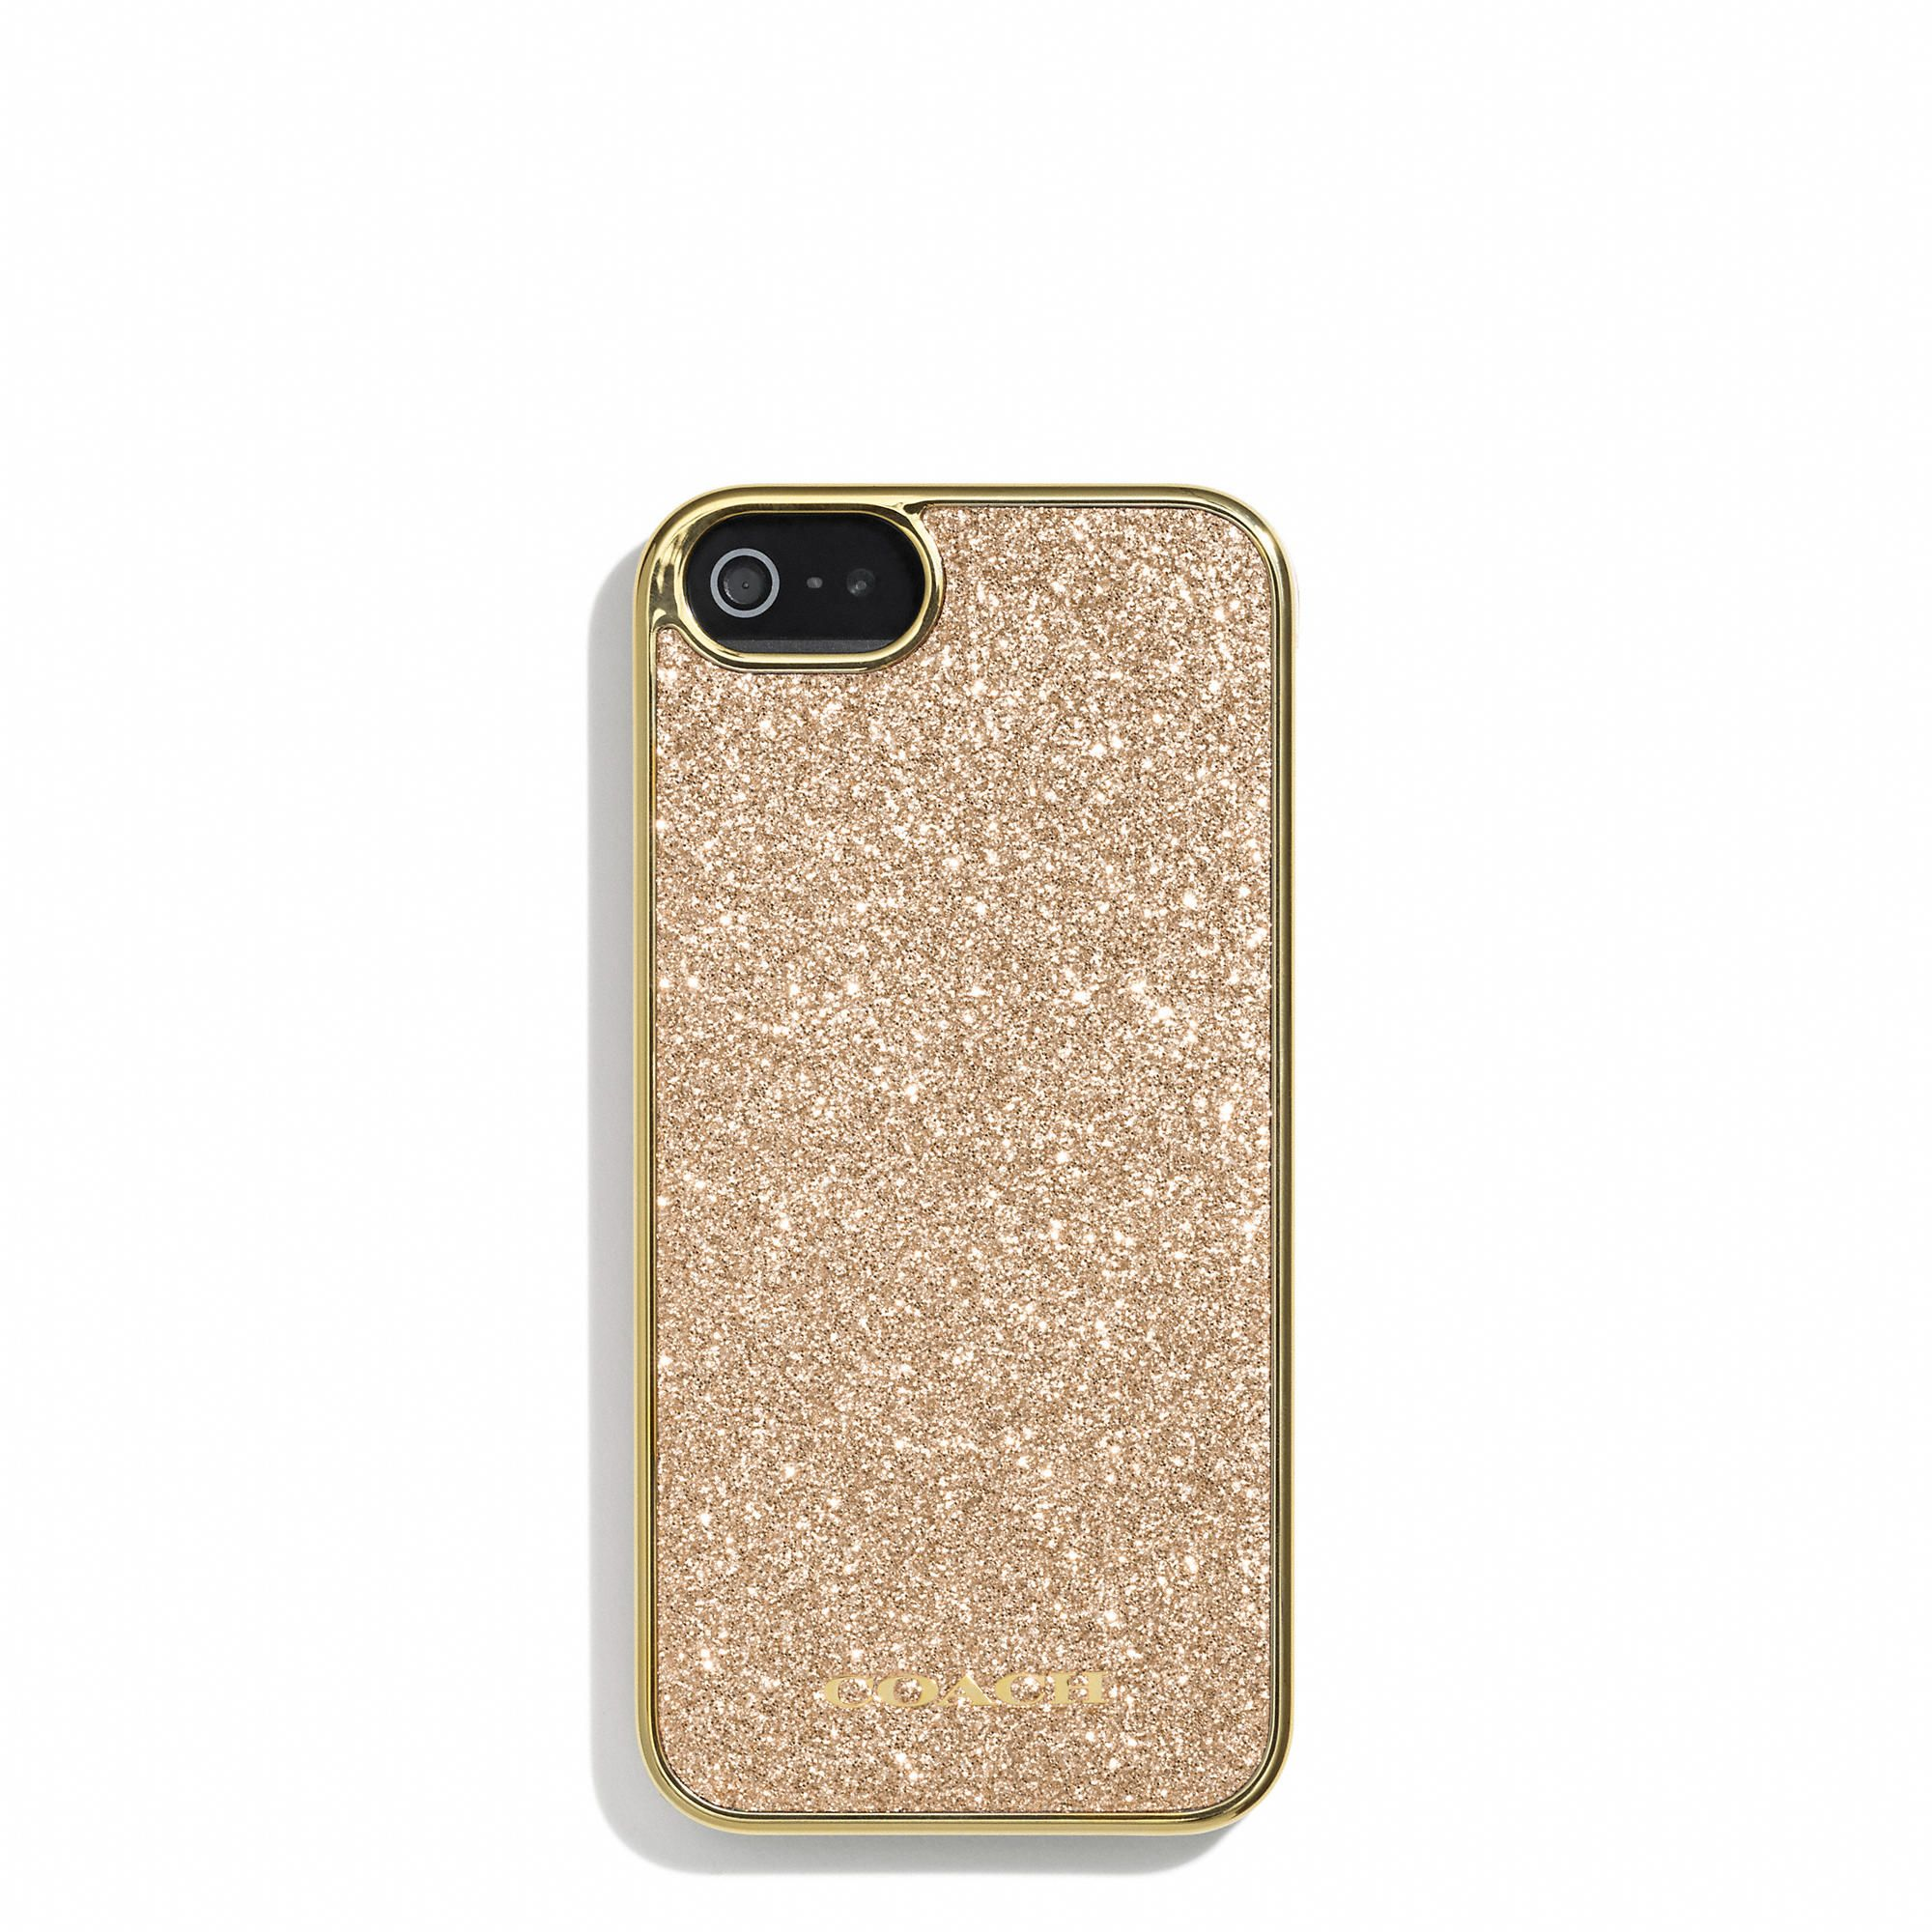 Coach Glitter Inlay Iphone 5 Case | Iphone 5 case, Iphone